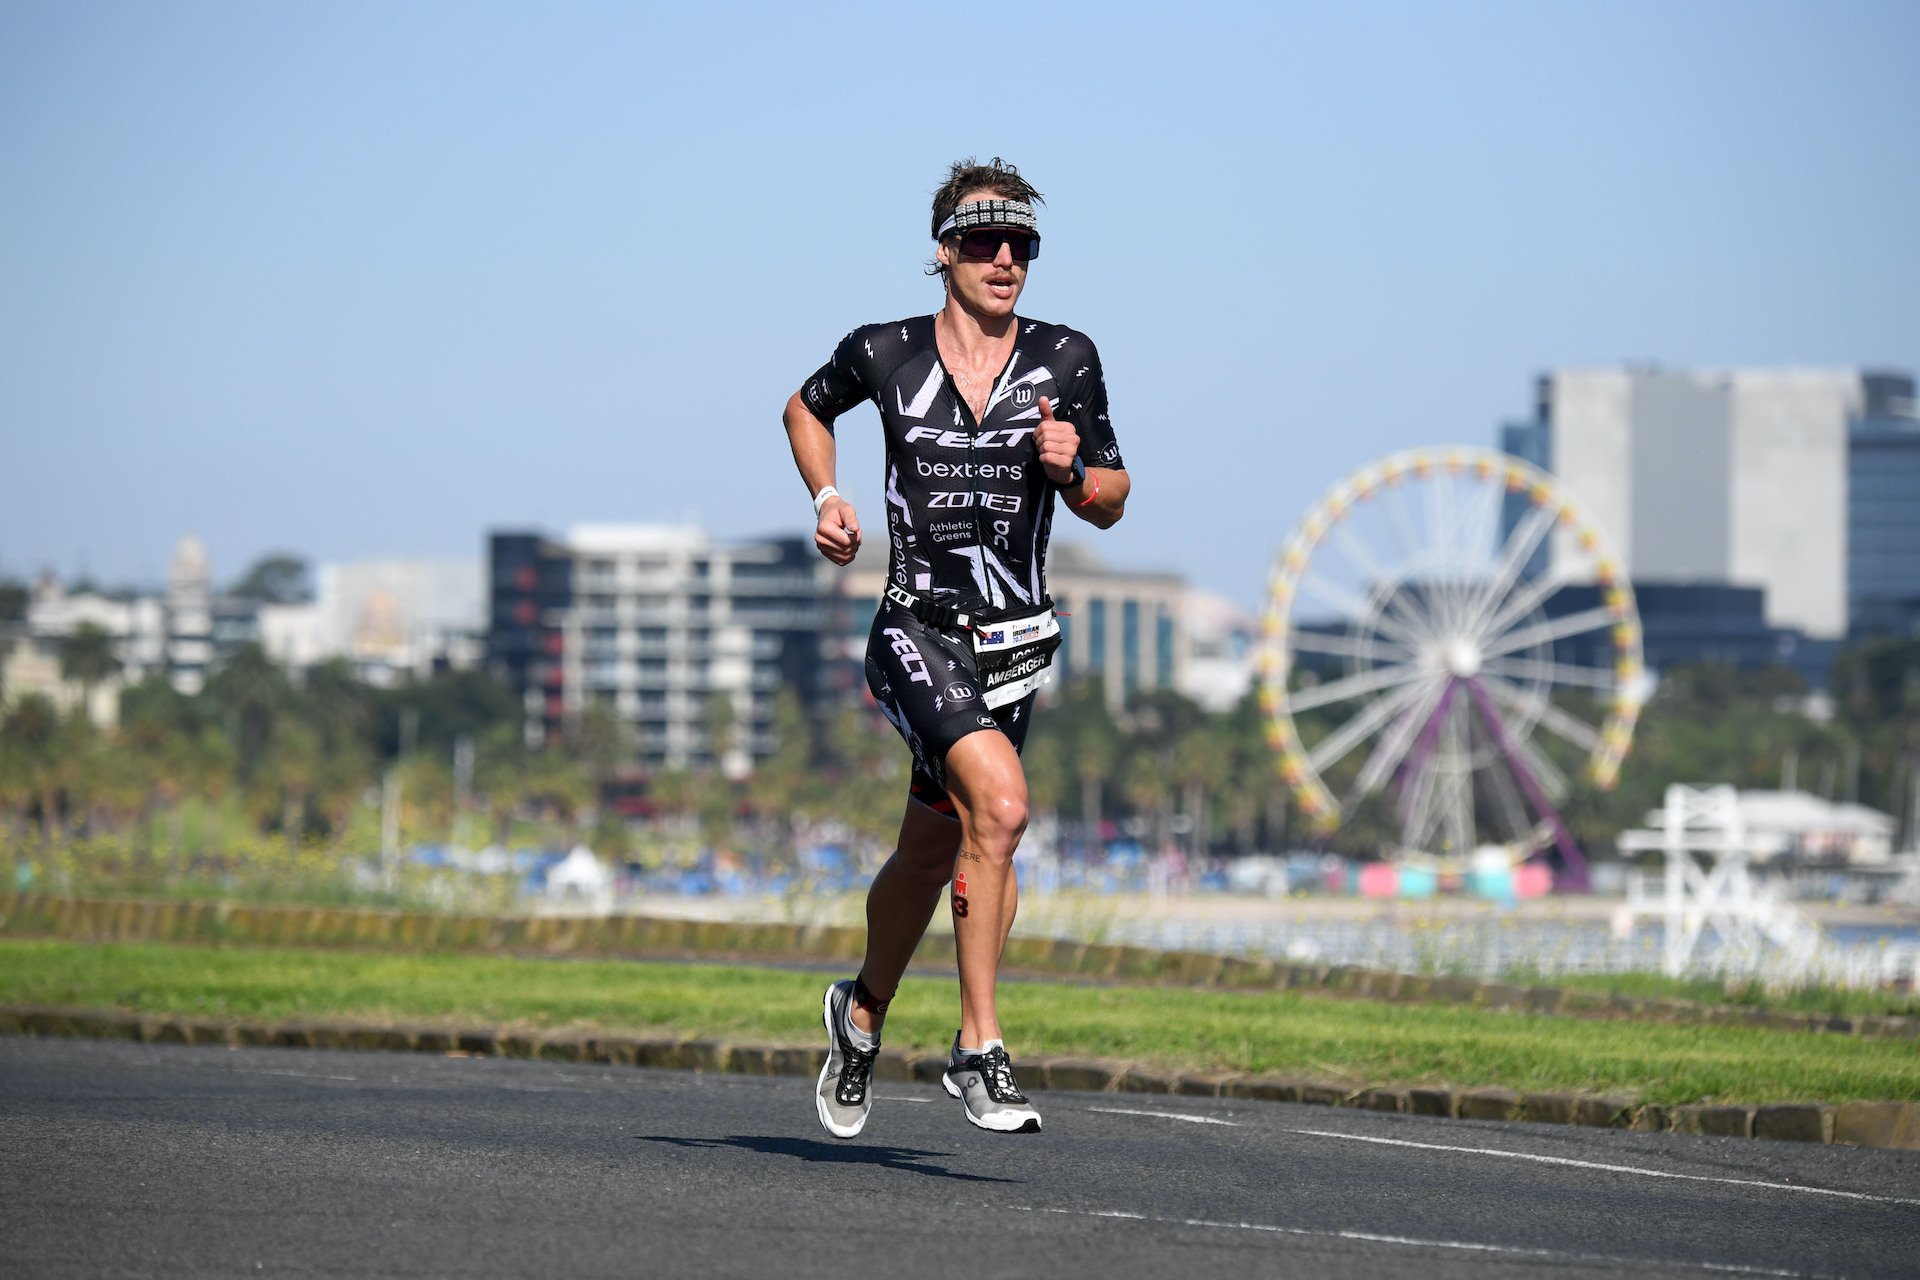 Josh Amberger at Geelong's 2020 Australian Long Course Championships and Ironman 70.3. (Photo: Delly Carr, Triathlon Australia)